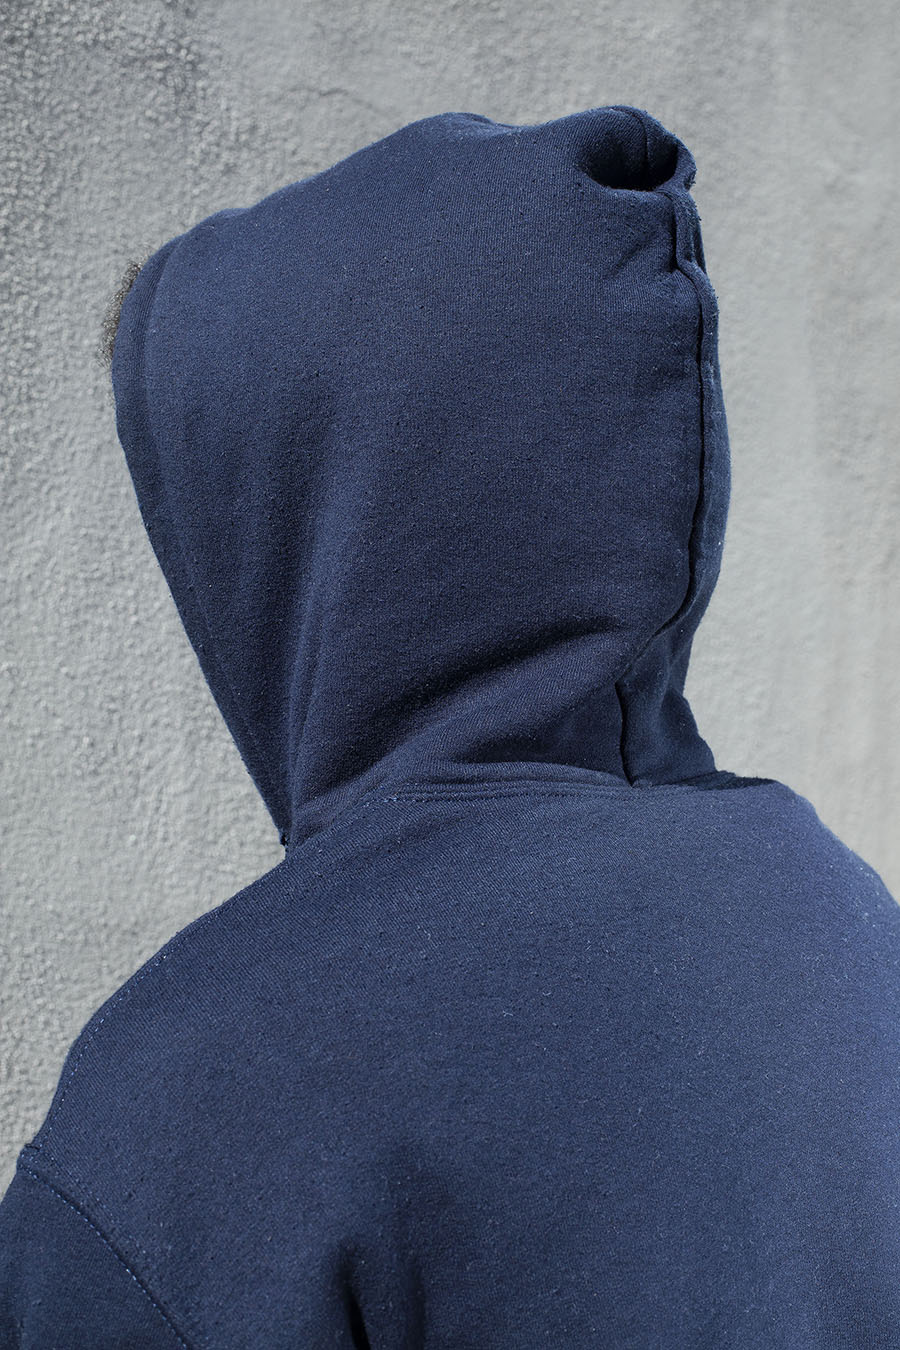 PaperJournal_JohnEdmonds_05_Untitled(Hood1),2016